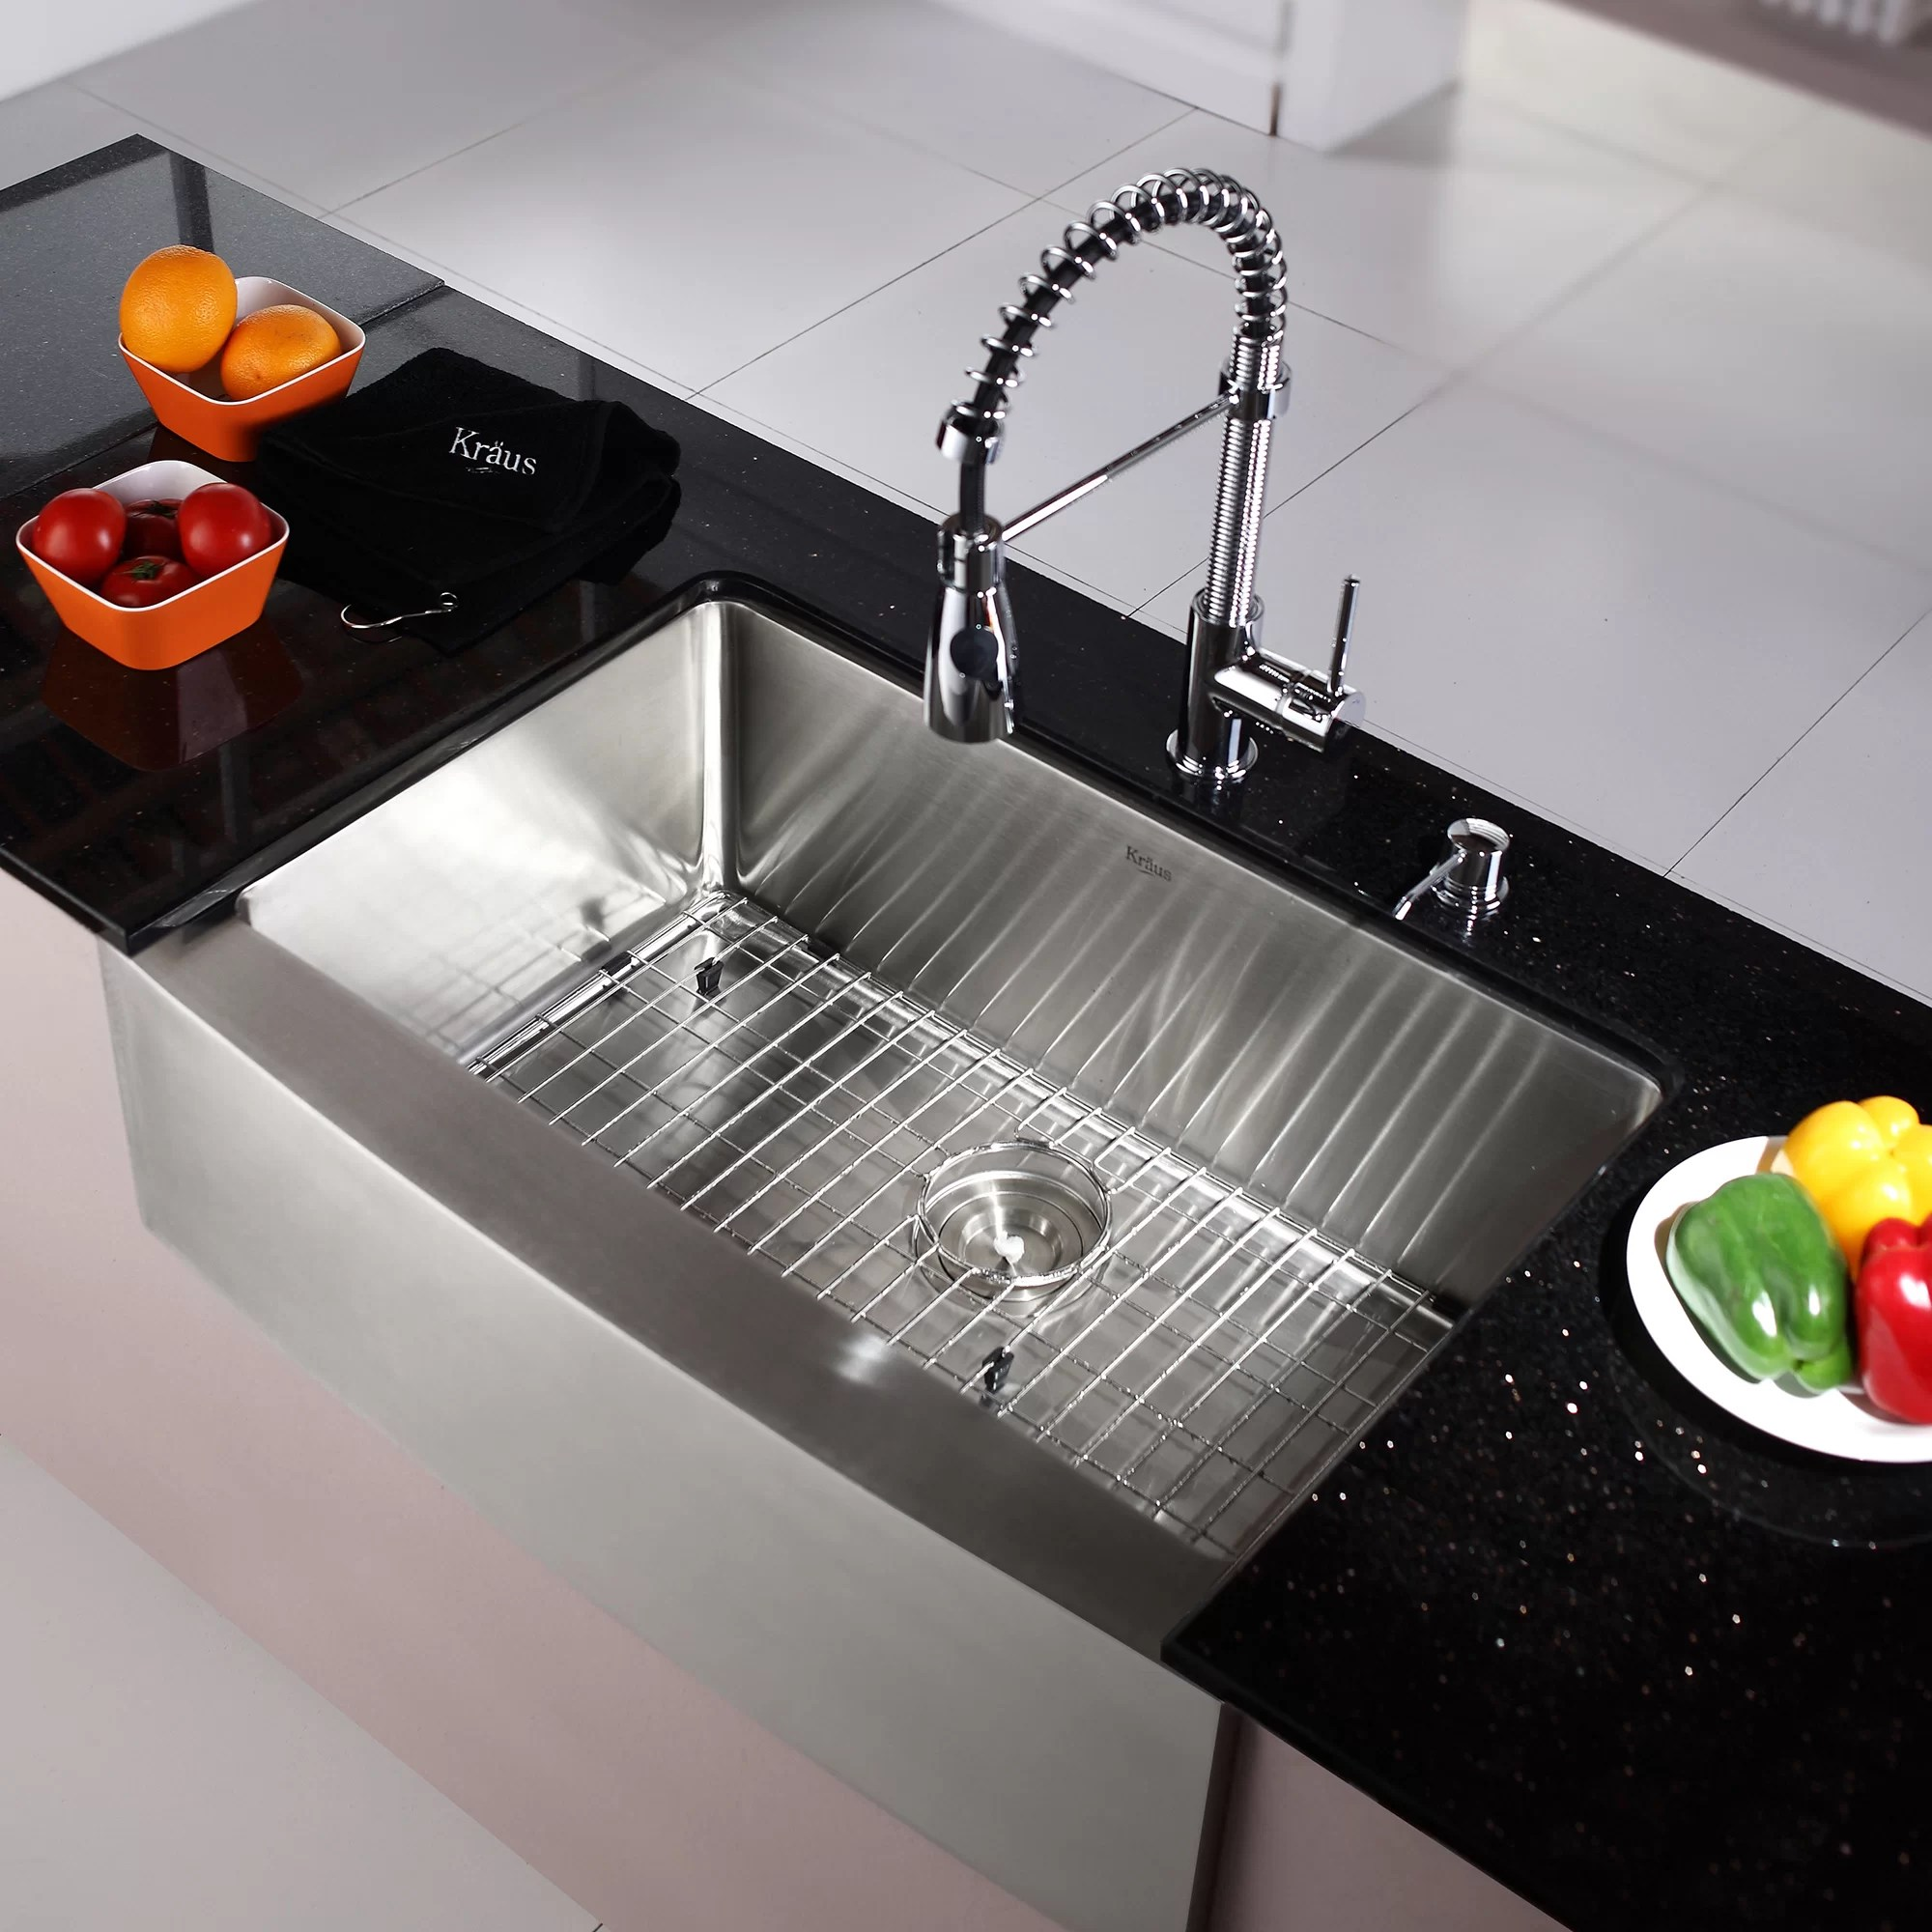 Kraus Commercial Style 30 x 20 Single Basin Farmhouse Apron Kitchen Sink with Faucet and Dispenser